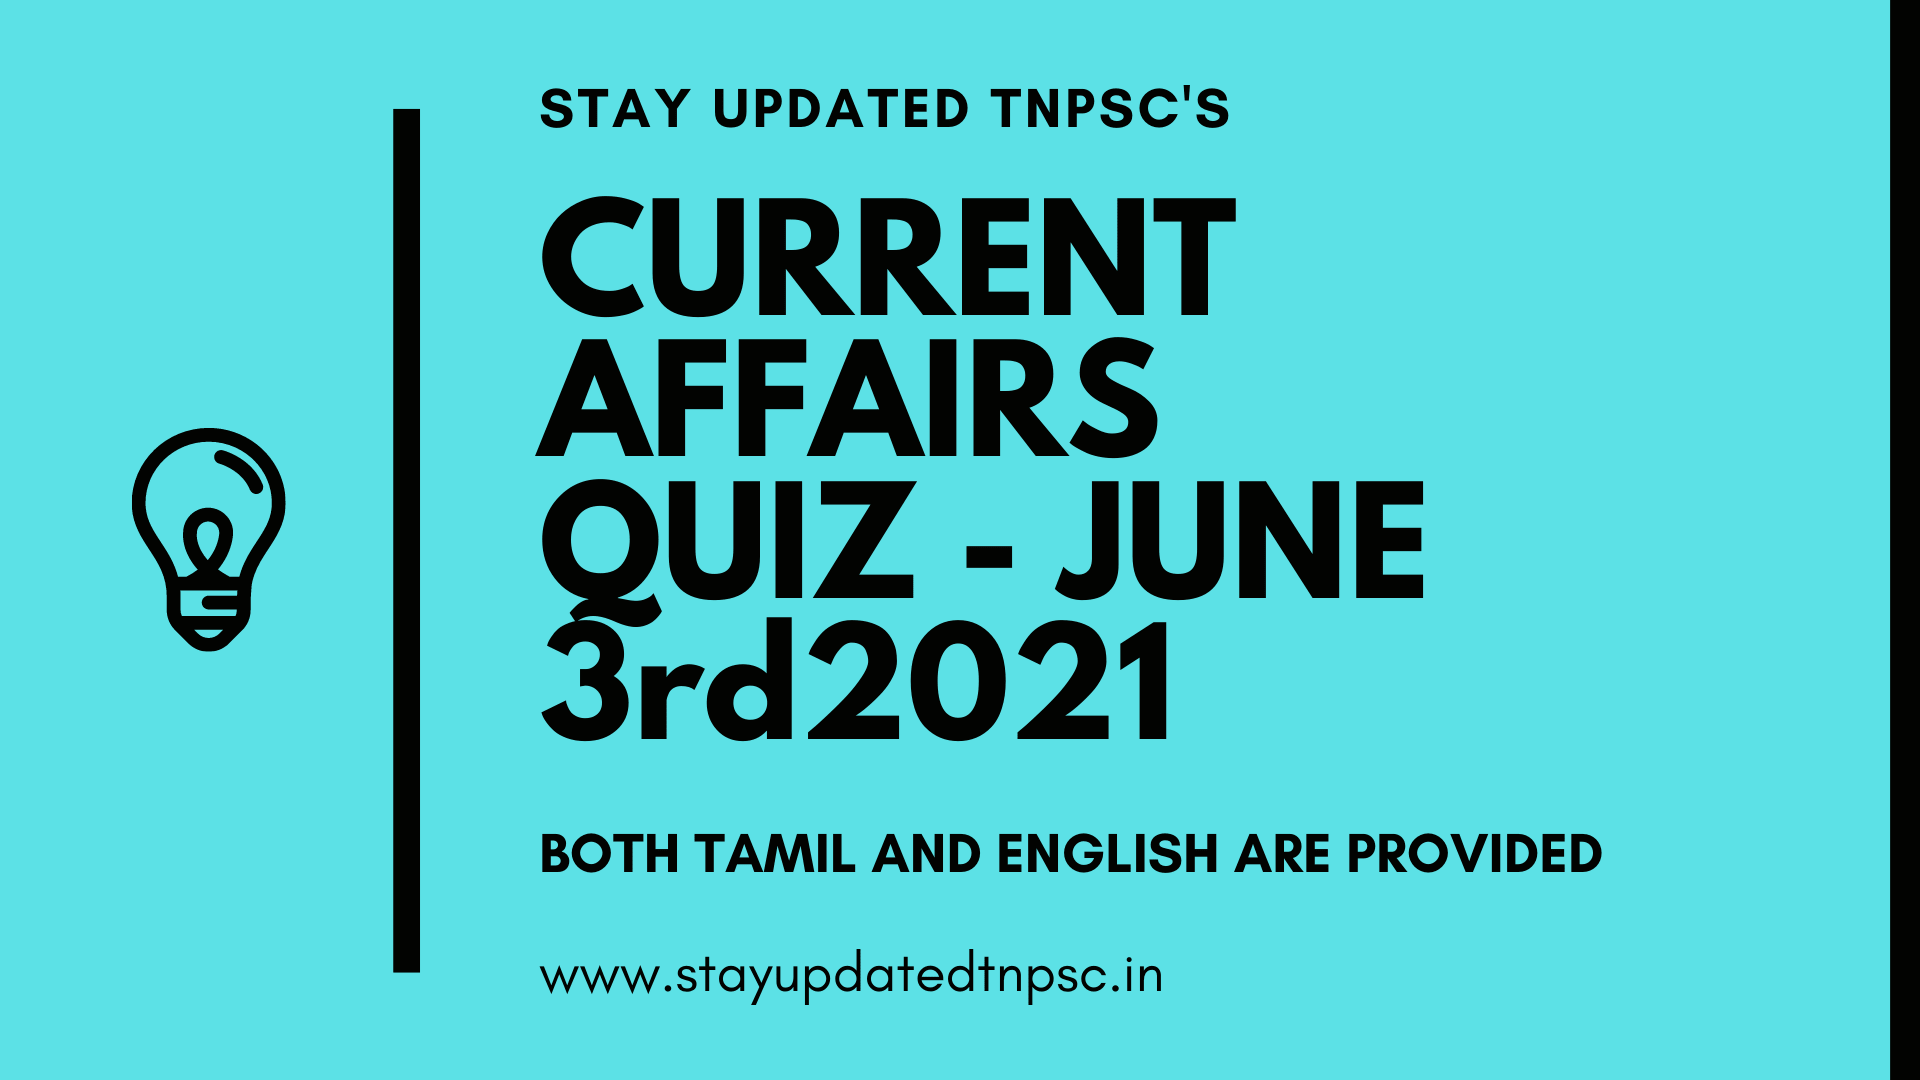 TNPSC DAILY CURRENT AFFAIRS: 03 JUNE 2021